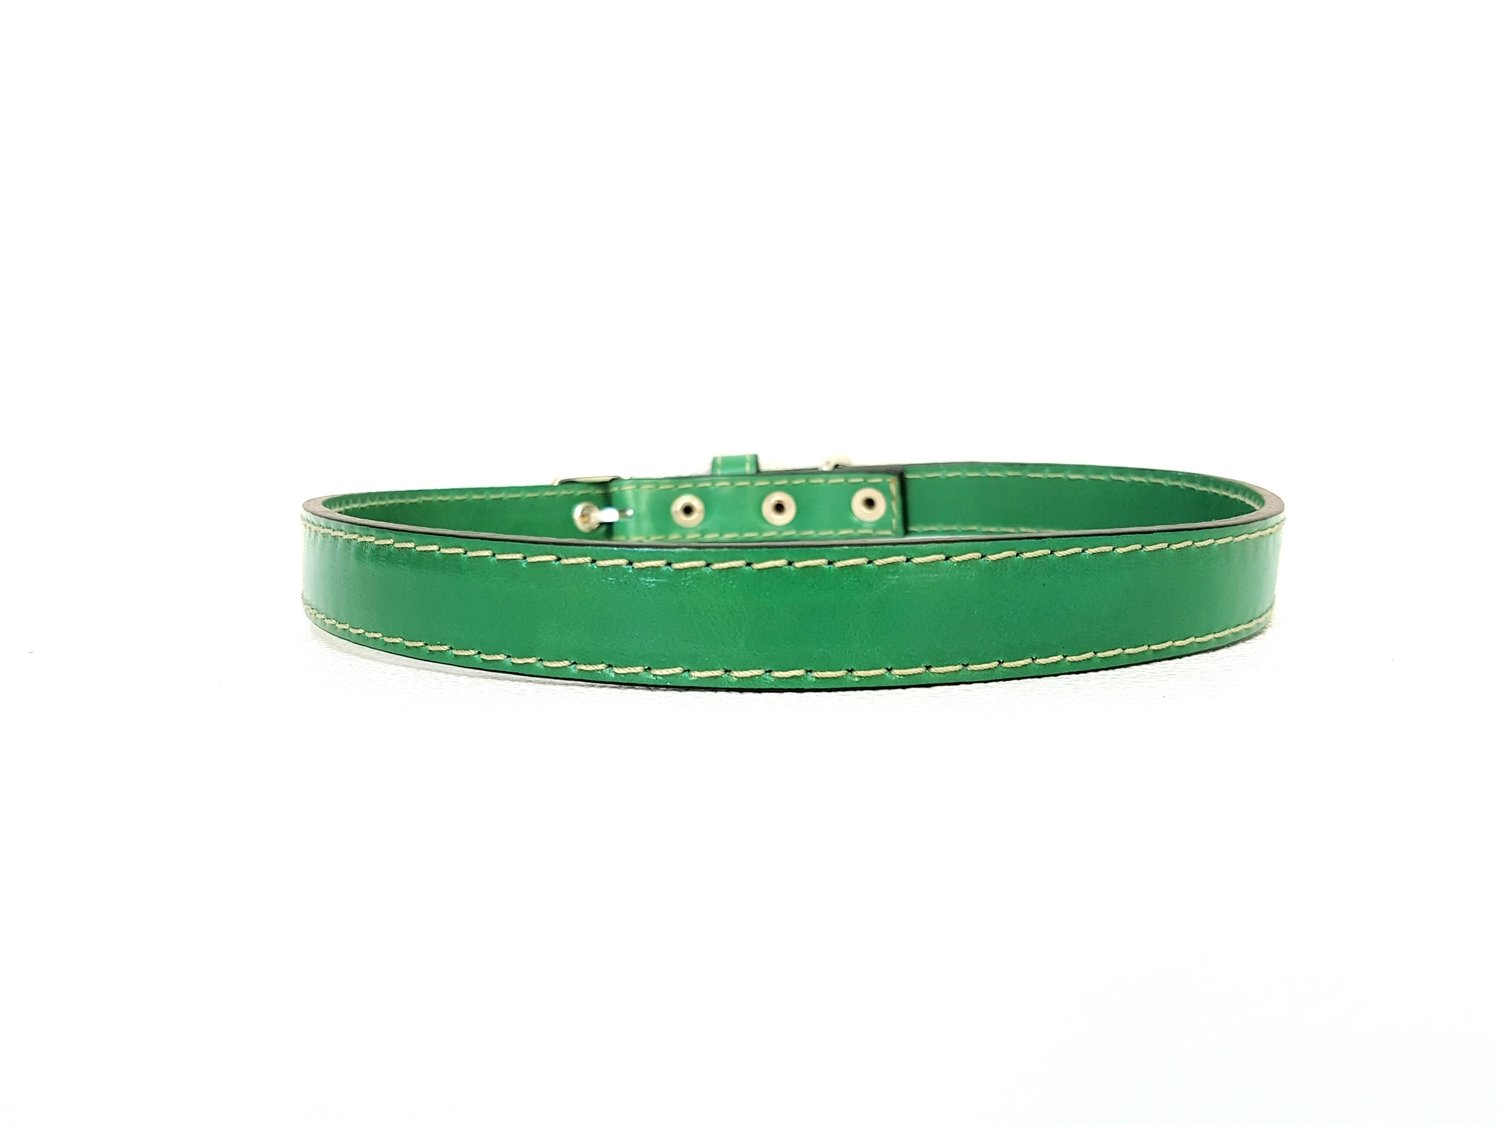 Verde / Green (2 cm / 0,79 inches)